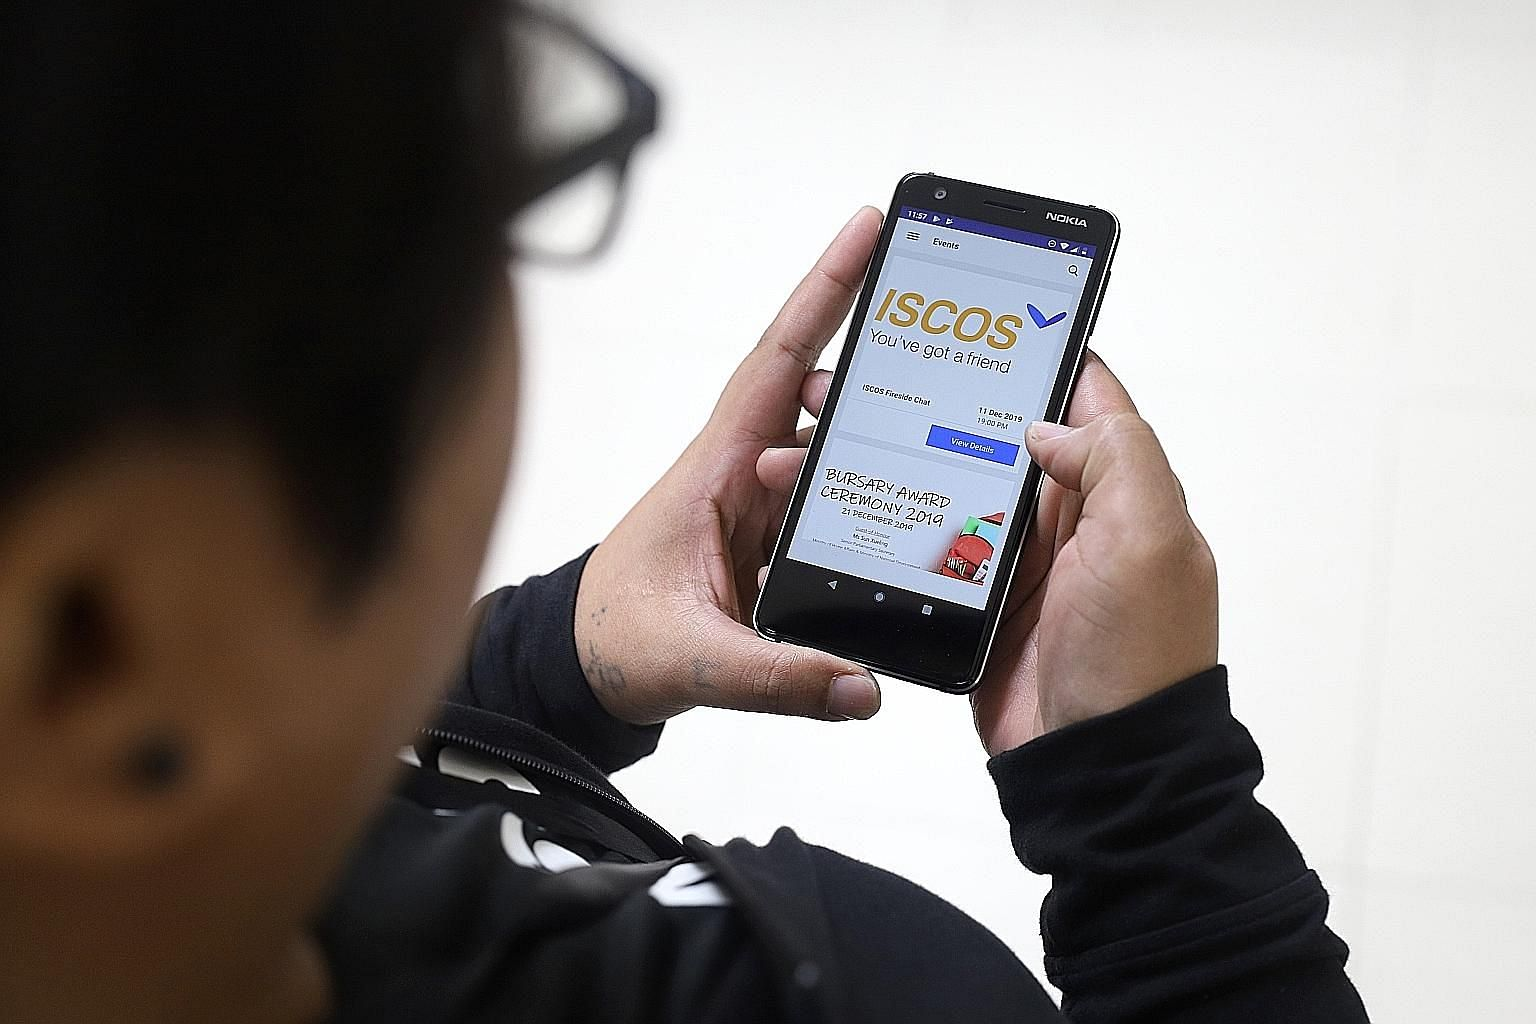 Each smartphone given out under Project Give A Line, Change A Life comes with a six-month unlimited data plan and an app aimed at helping the former offenders.